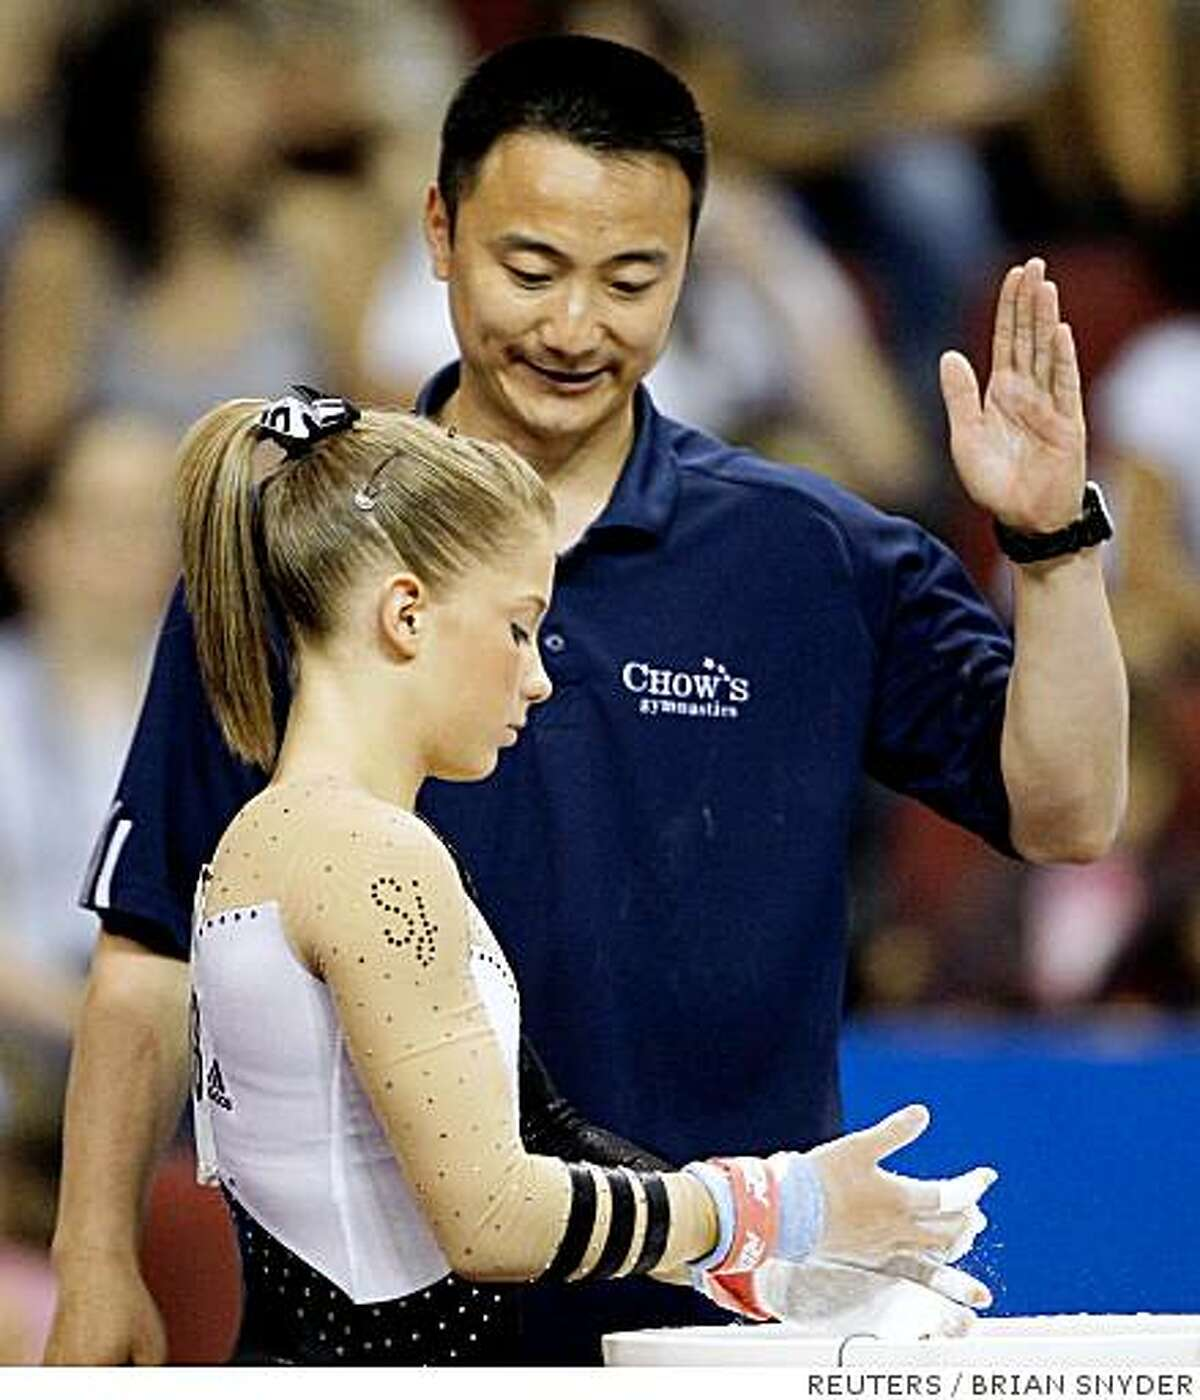 Shawn Johnson (front) listens to her coach Liang Chow before she competes on the uneven bars at the U.S. Women's Gymnastics Championships in Boston, Massachusetts, June 7, 2008. REUTERS/Brian Snyder (UNITED STATES)